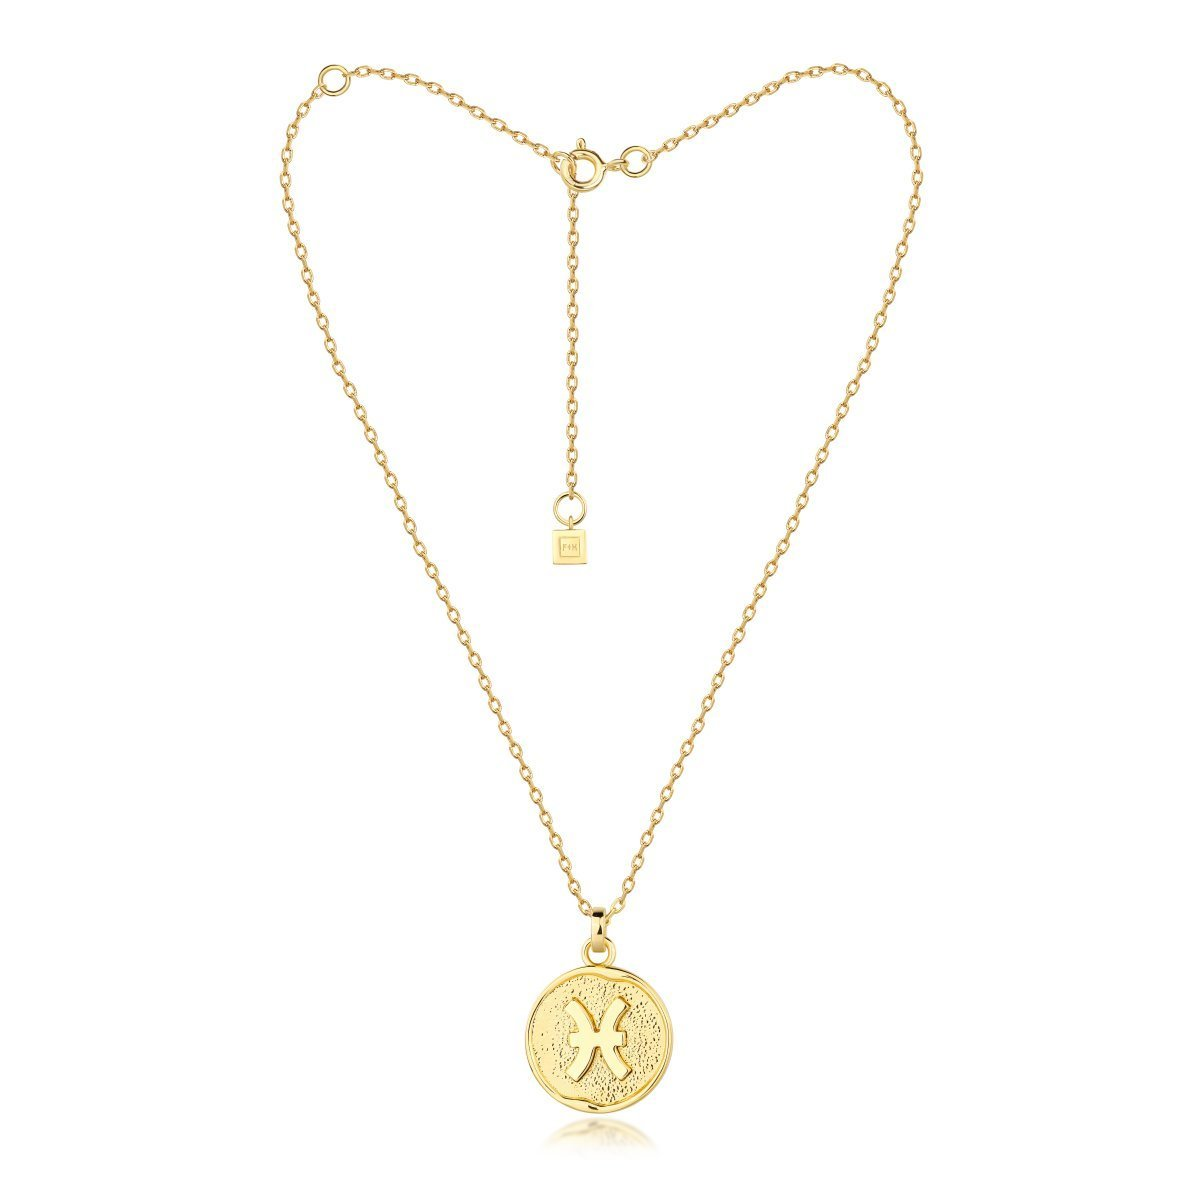 f + h jewellery - pisces necklace - gold